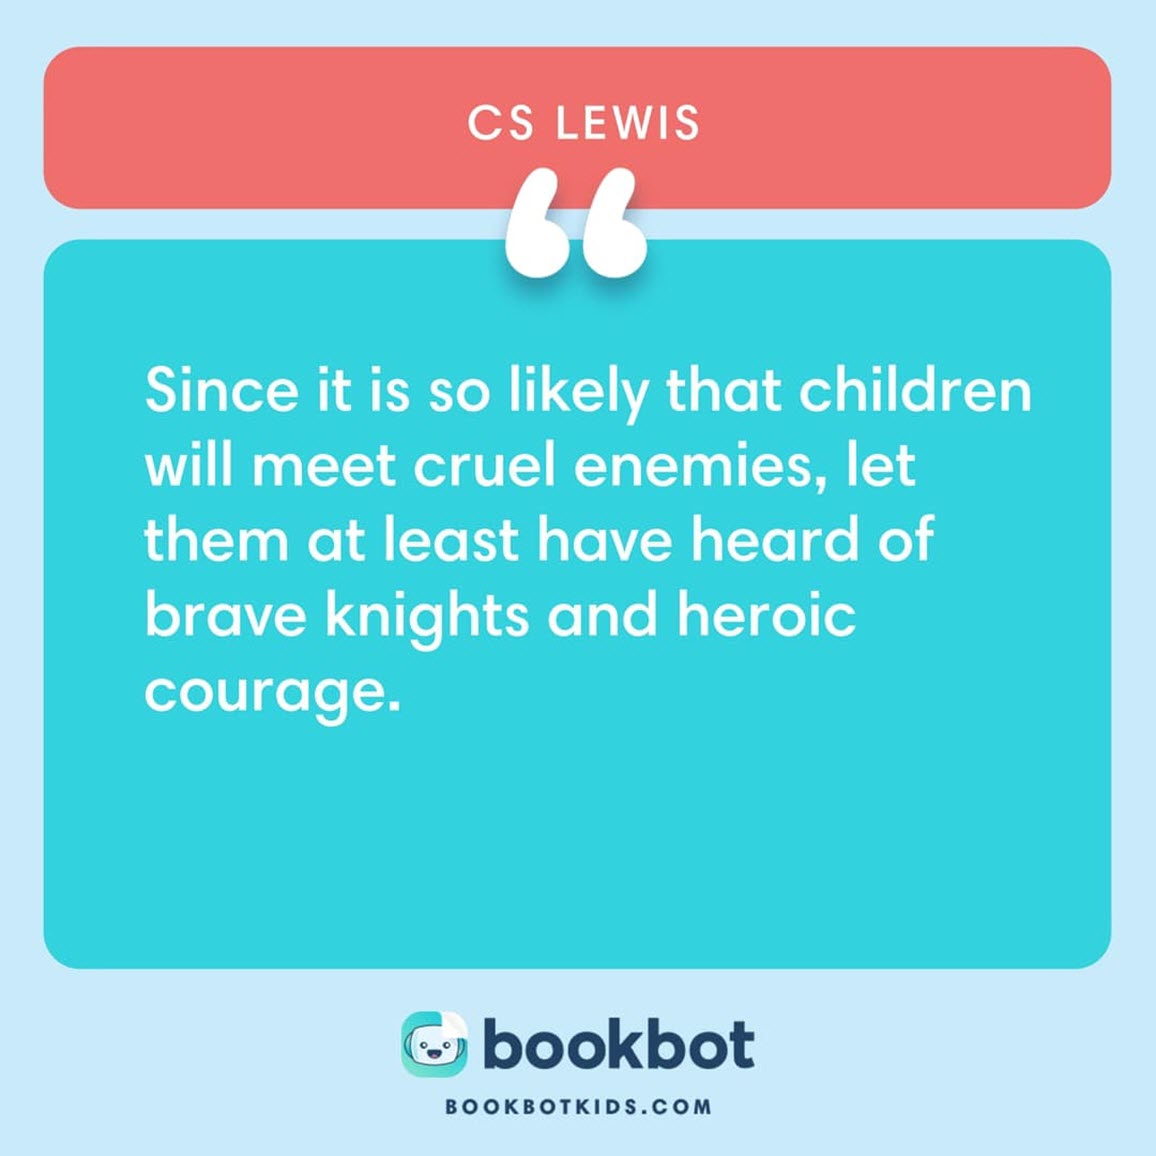 Since it is so likely that children will meet cruel enemies, let them at least have heard of brave knights and heroic courage. – CS Lewis